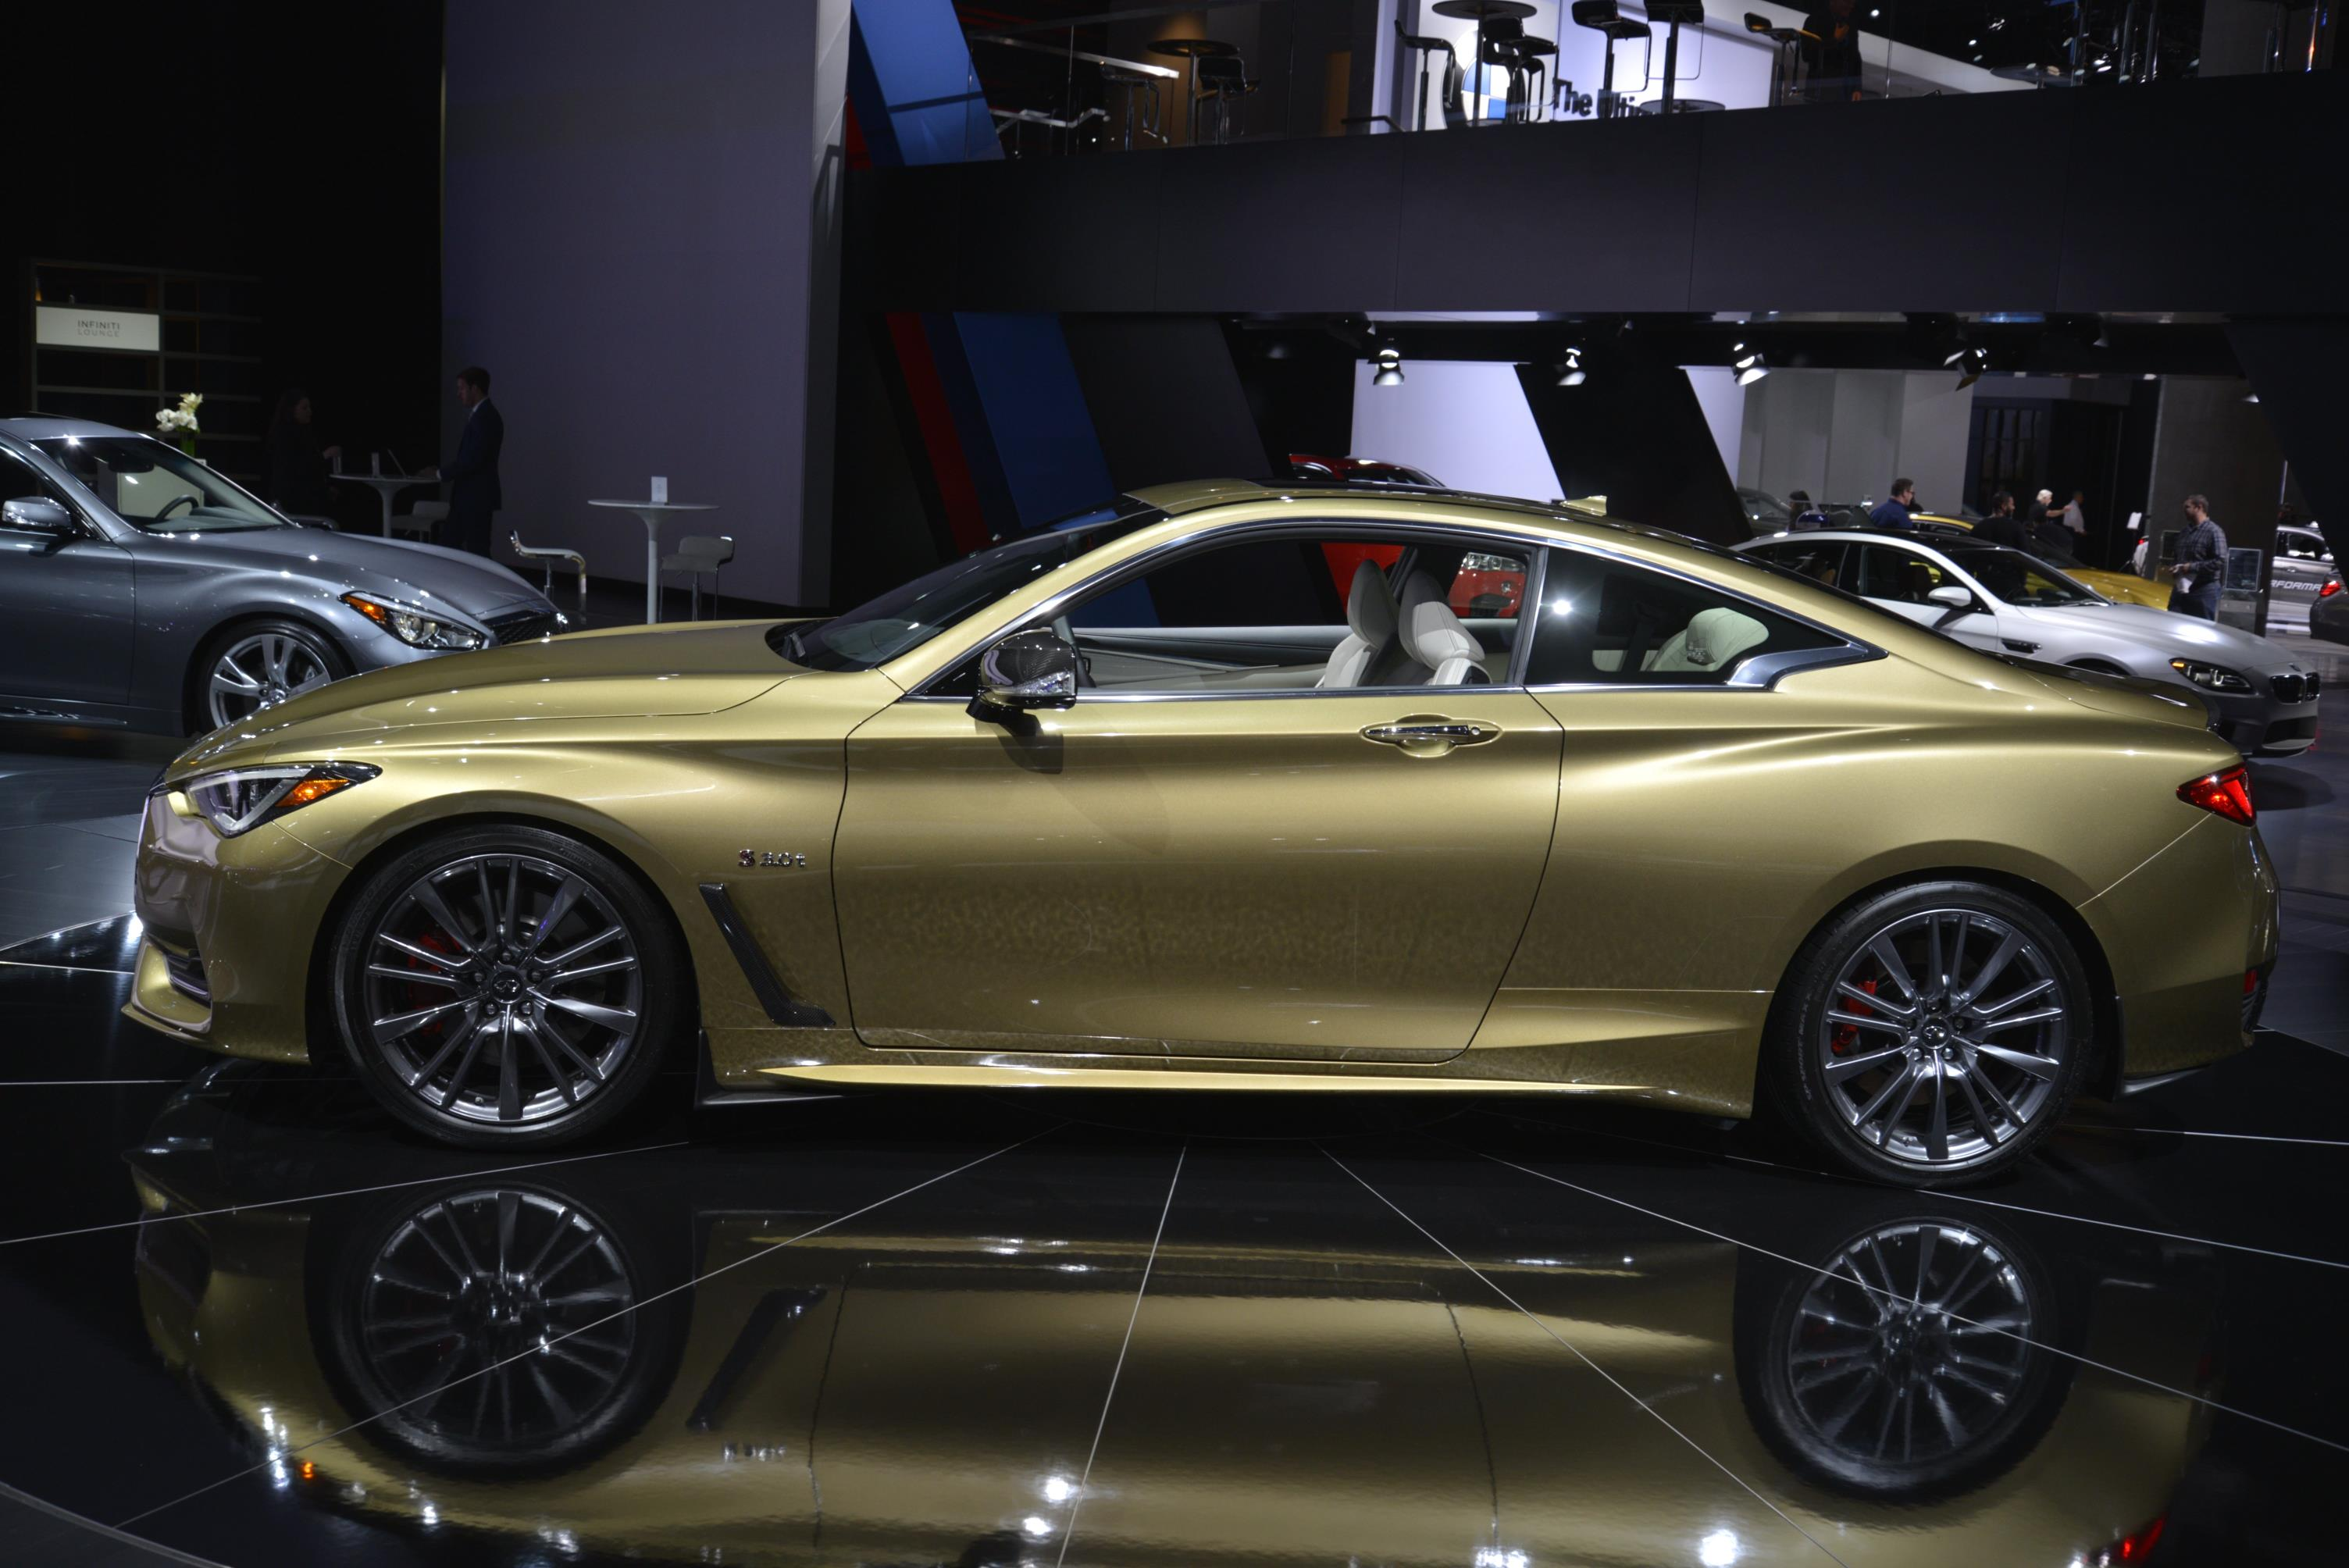 2017 Infiniti Q60 Gets Neiman Marcus Limited Edition Worth $63,000